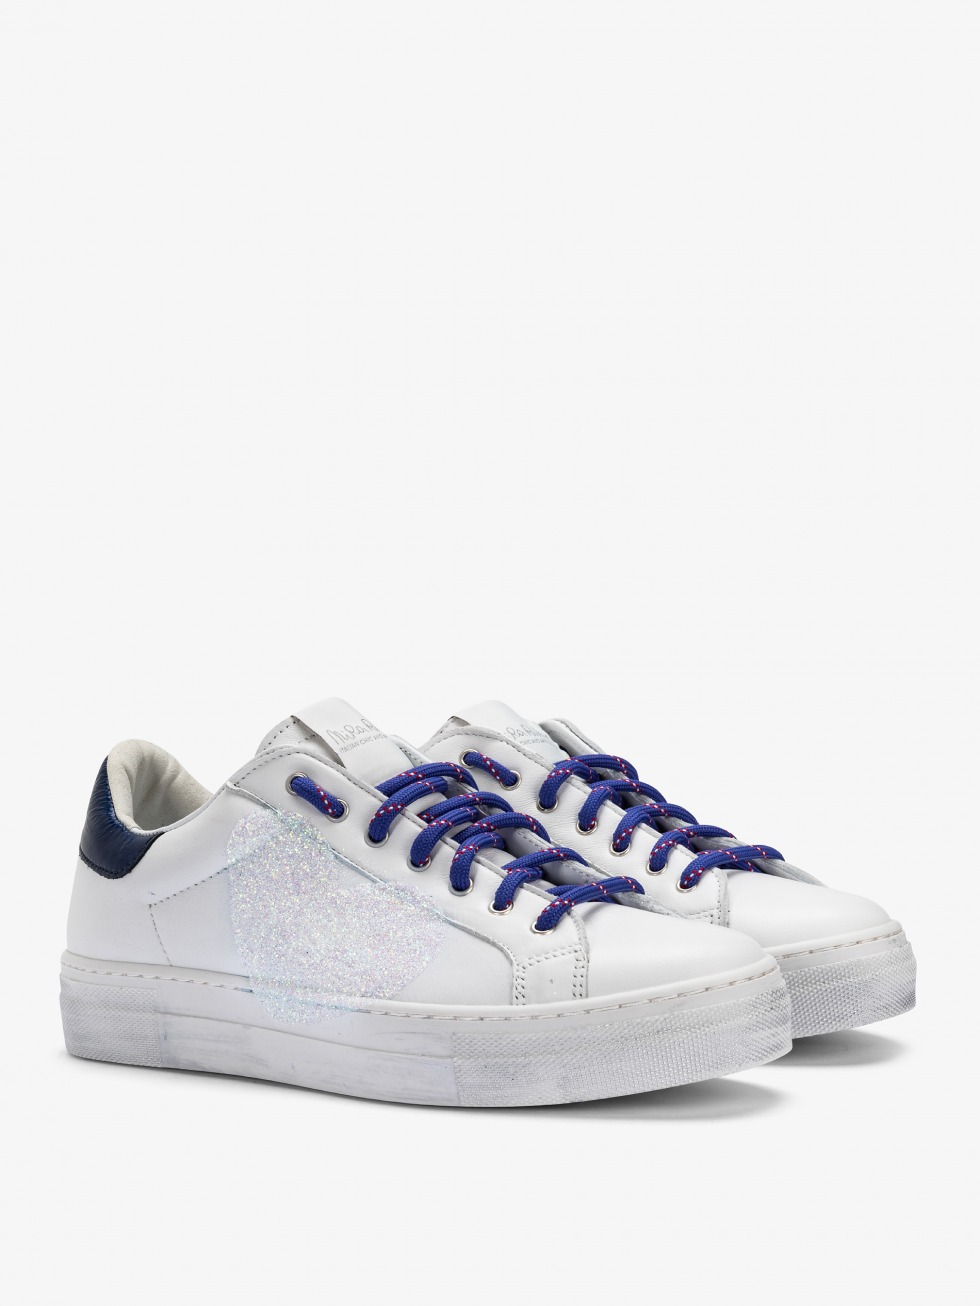 Sneakers Martini Vintage Blue Lips - Cuore